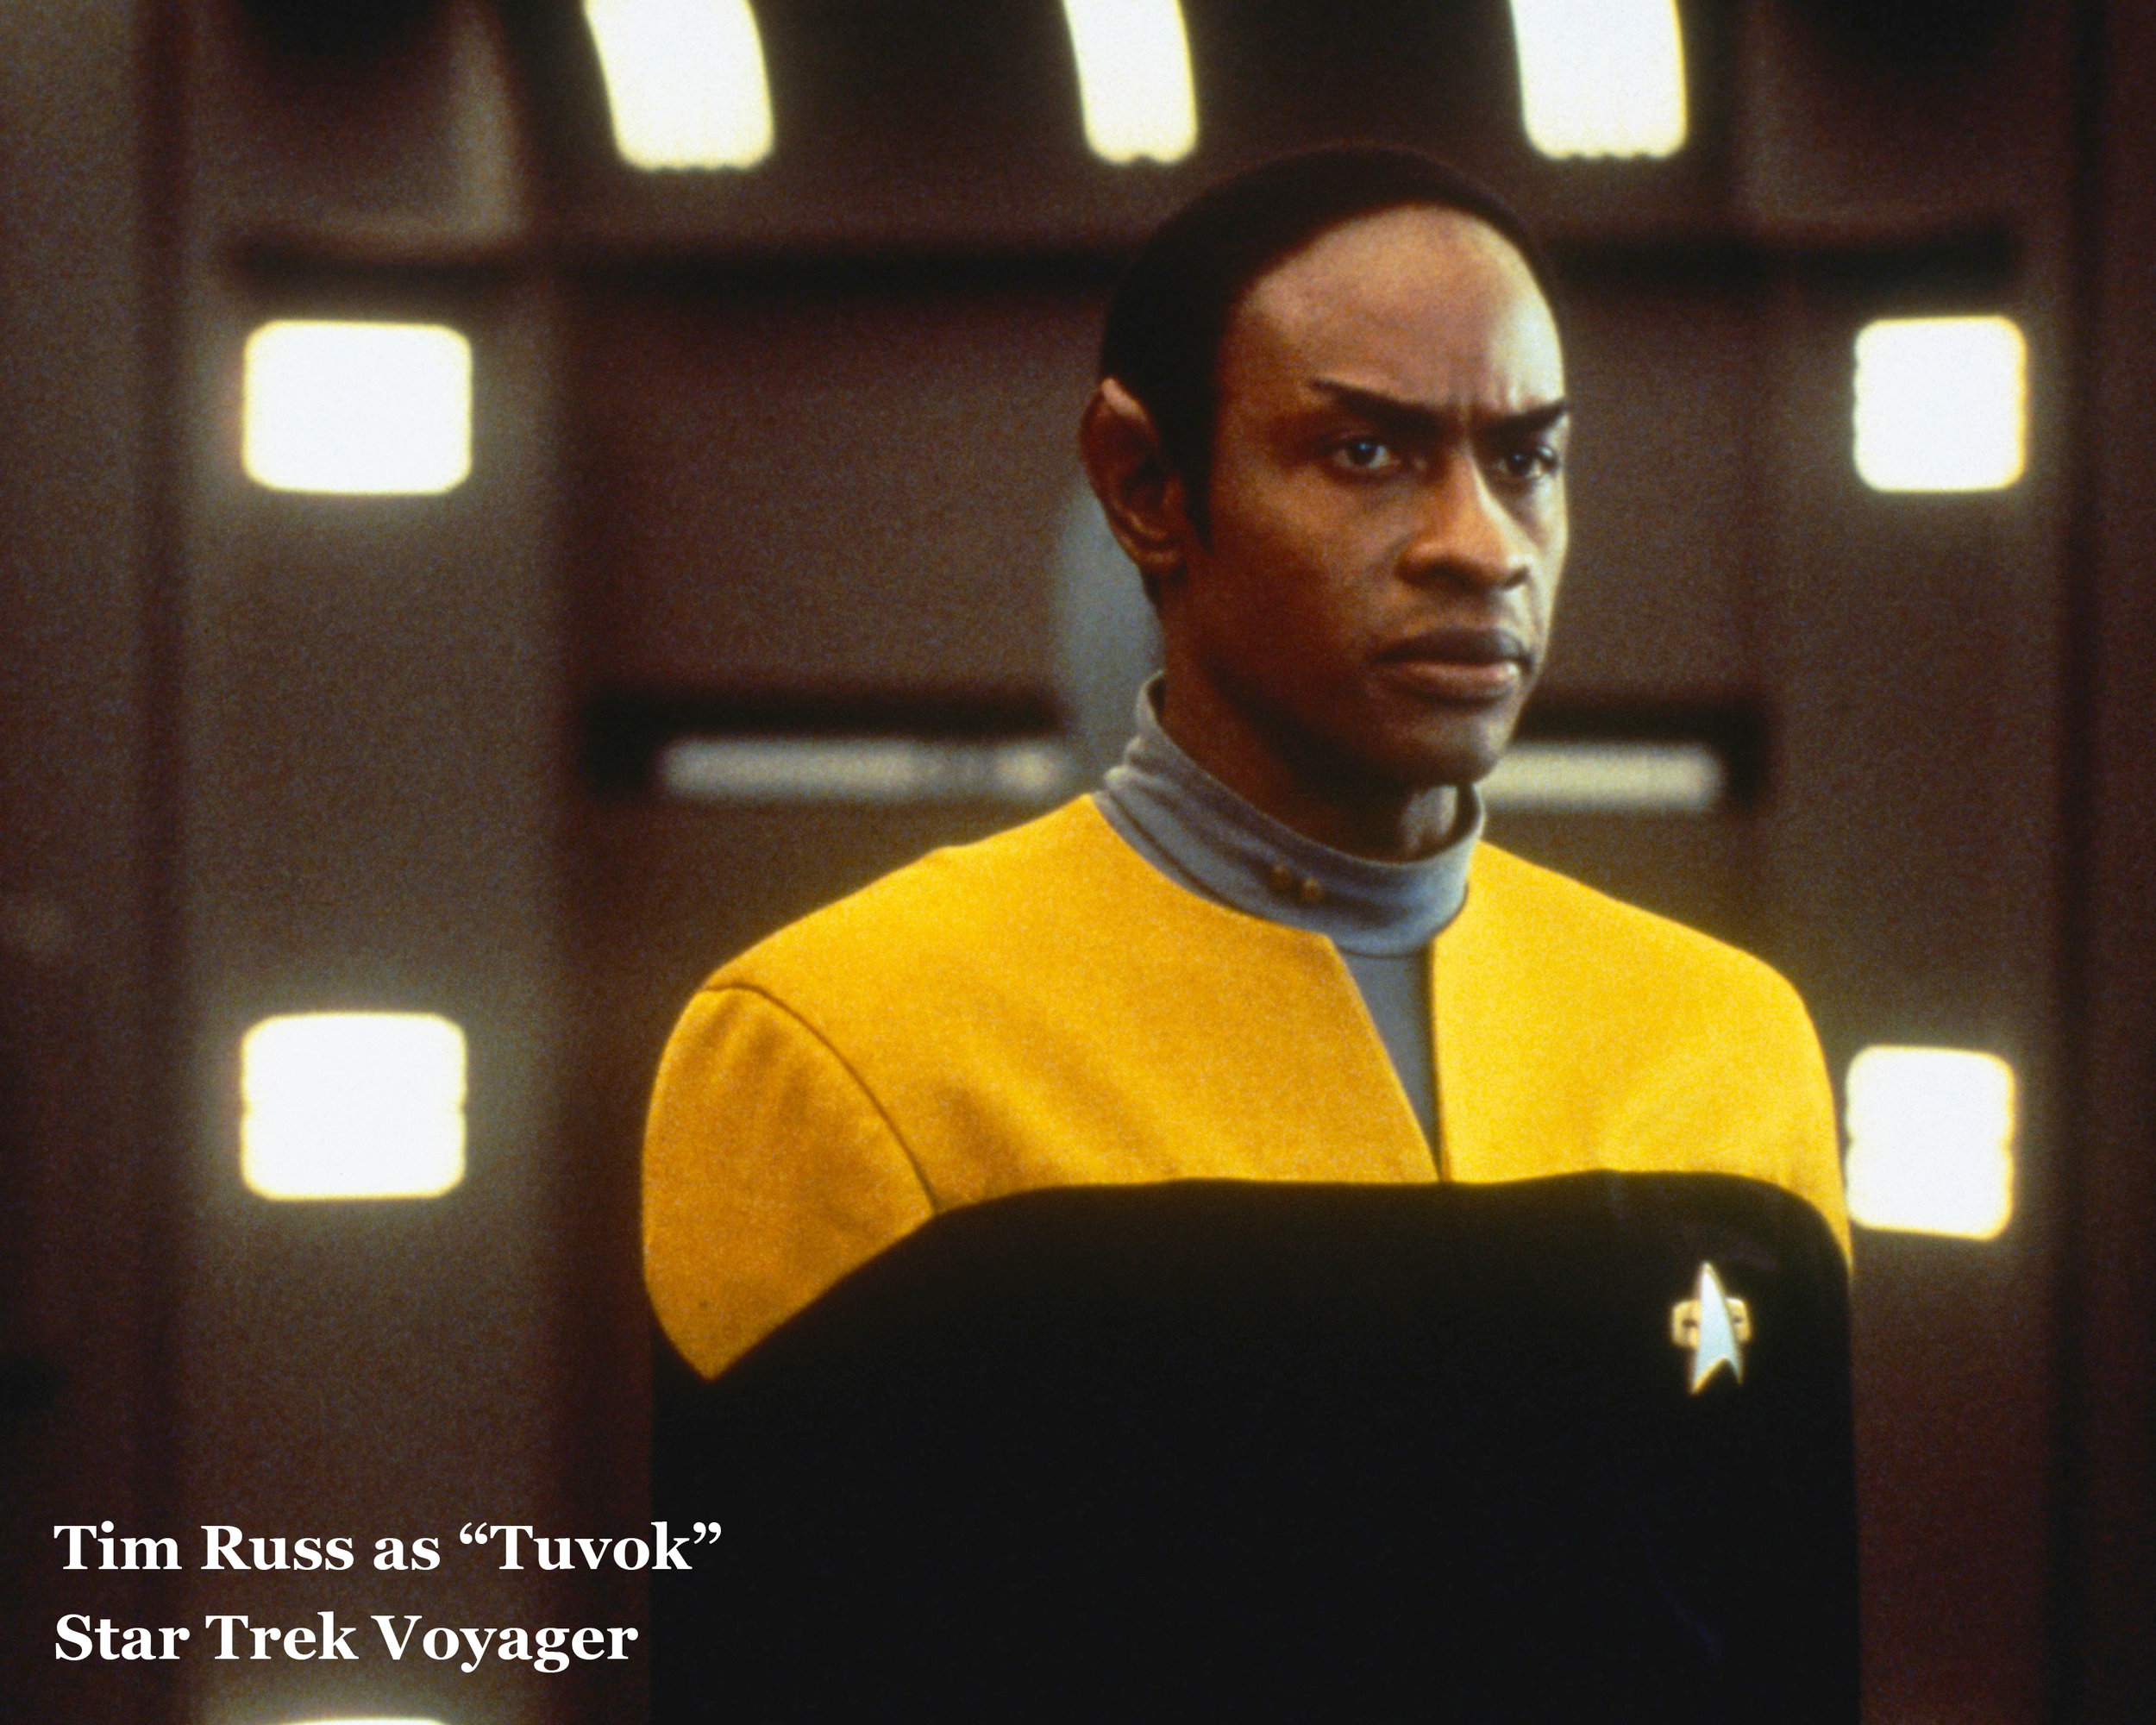 Tim Russ - Tim worked in a cross section of film and television. His film credits include